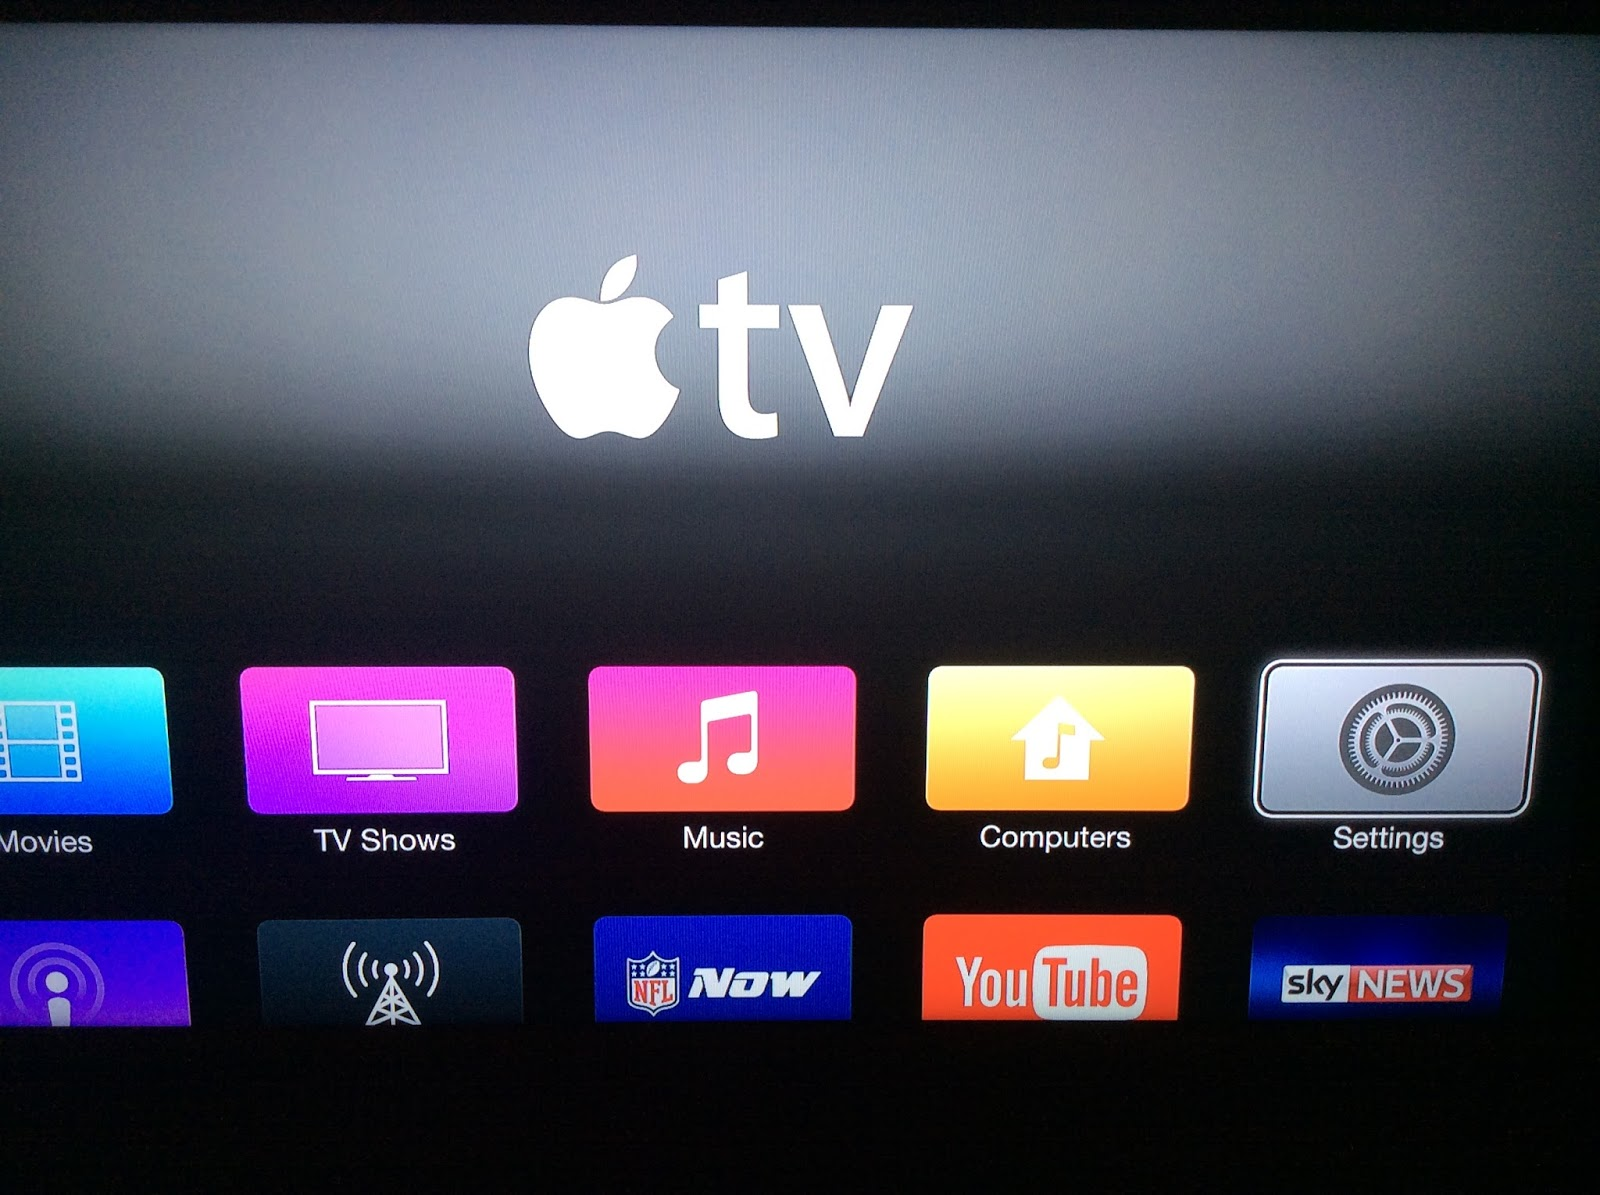 UK Apple TV home screen.